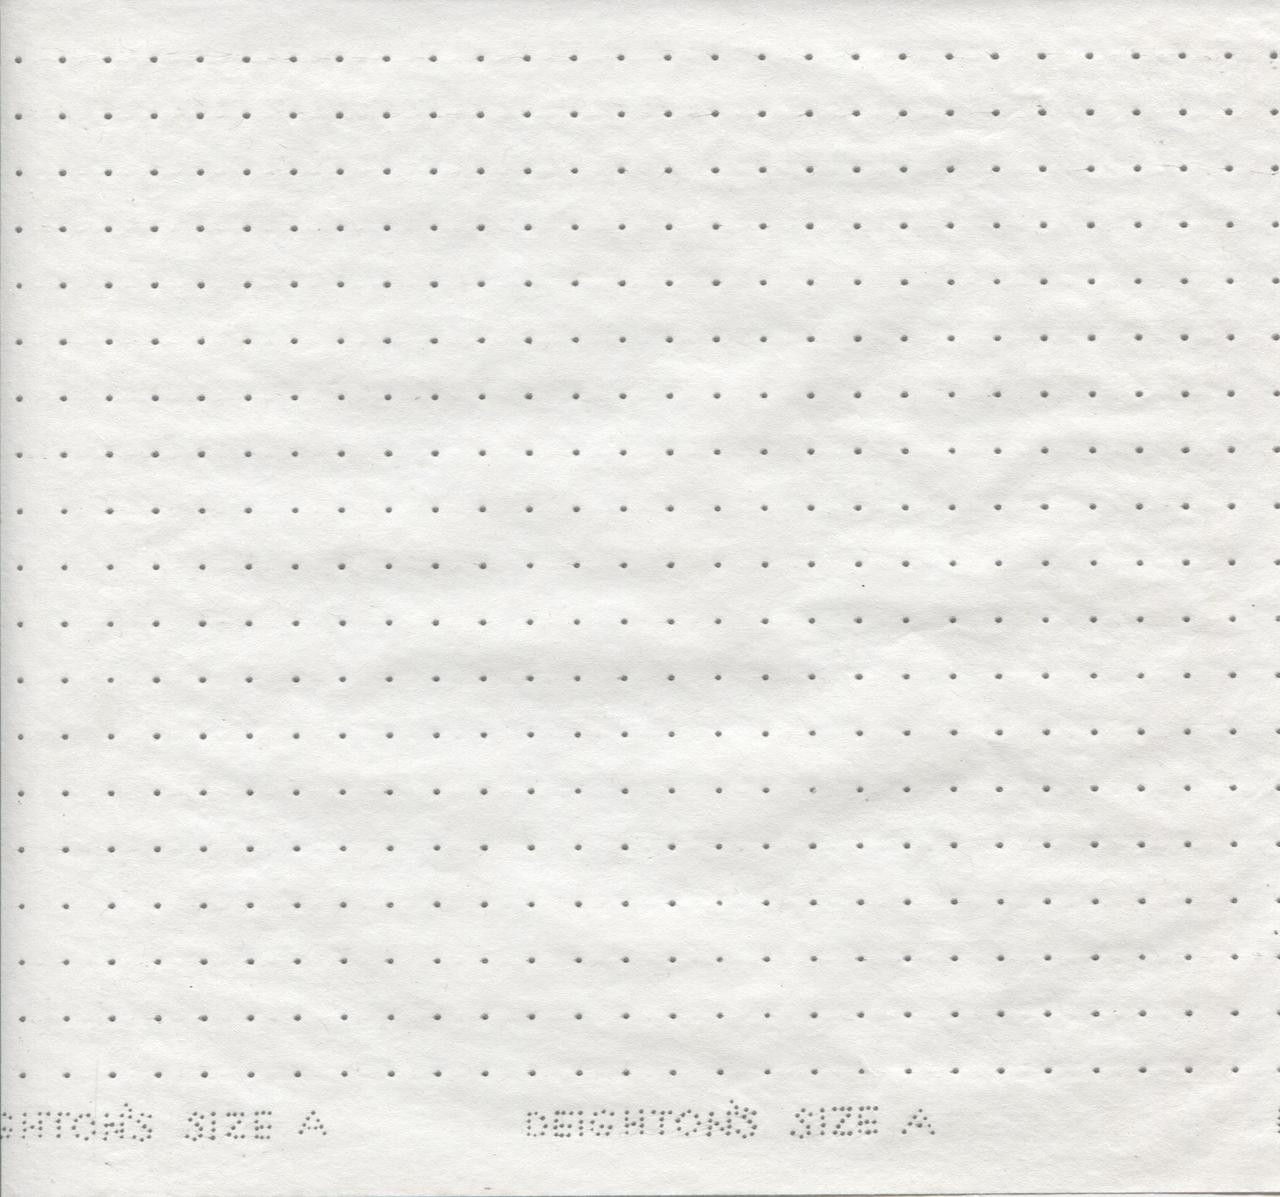 Smocking Transfer Dots - Size 'A' 8 mm x 9.5 mm - see video on how to use - one sheet in each pack - not designed to wash off